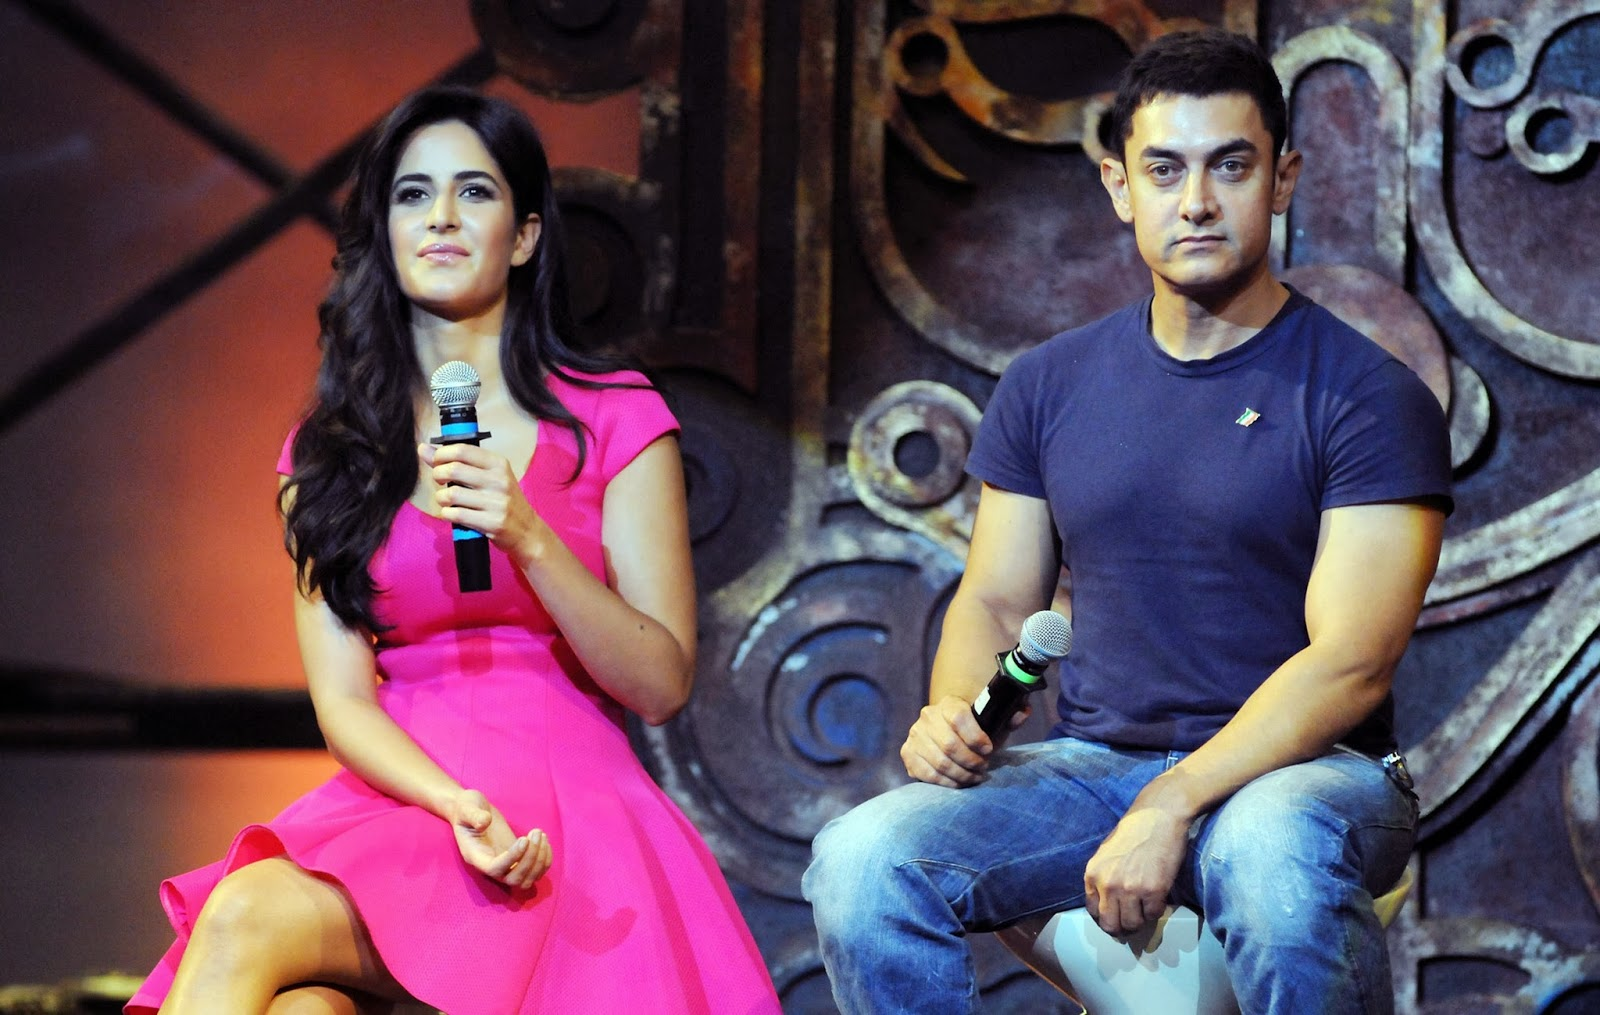 Aamir Khan, Aamir Khan and Katrina Kaif, Actor, Actress, Bollywood, Dhoom 3, Film, Hindi Film, India, Katrina Kaif, Movies, Mumbai, Showbiz, Entertainment, Bollywood actress,